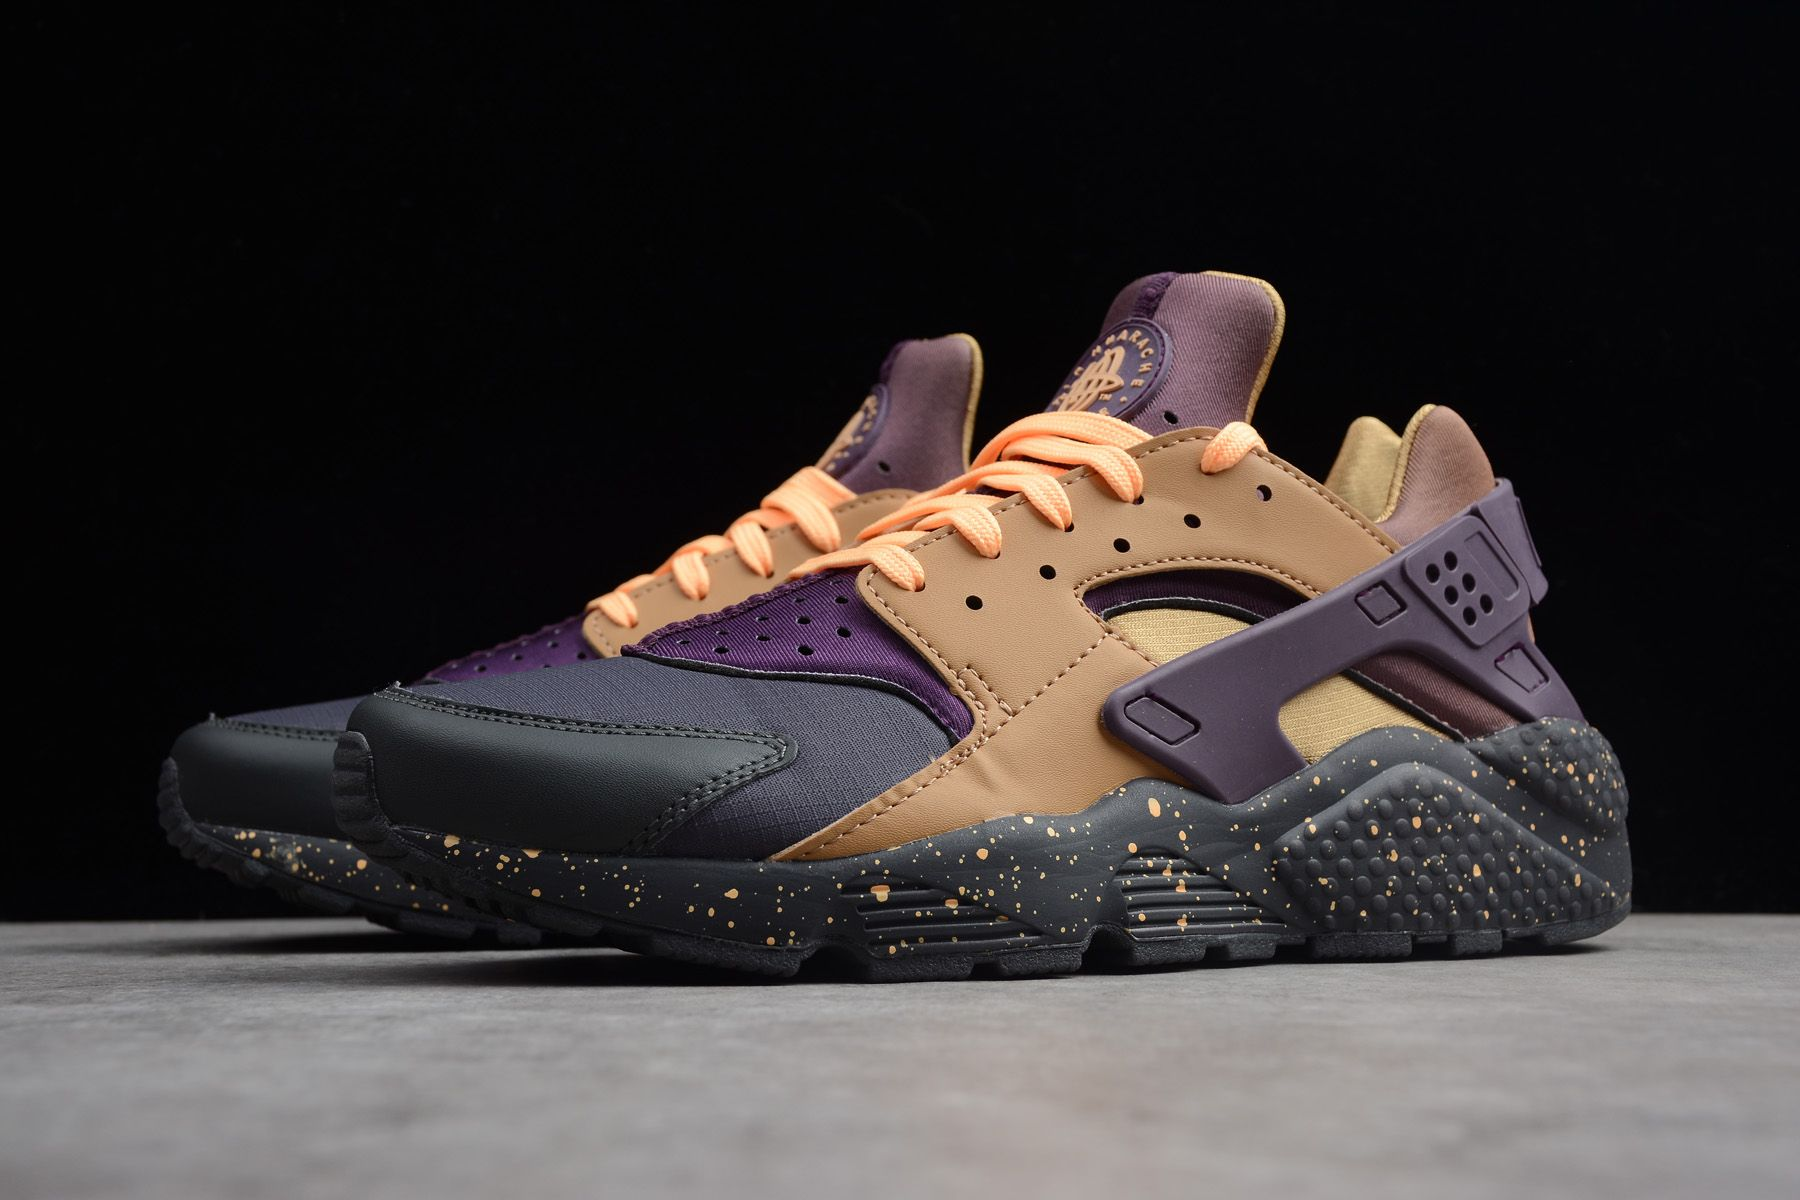 00242f0b829bb Nike Air Huarache Run Premium Anthracite/Pro Purple/Elemental Gold 704830- 012